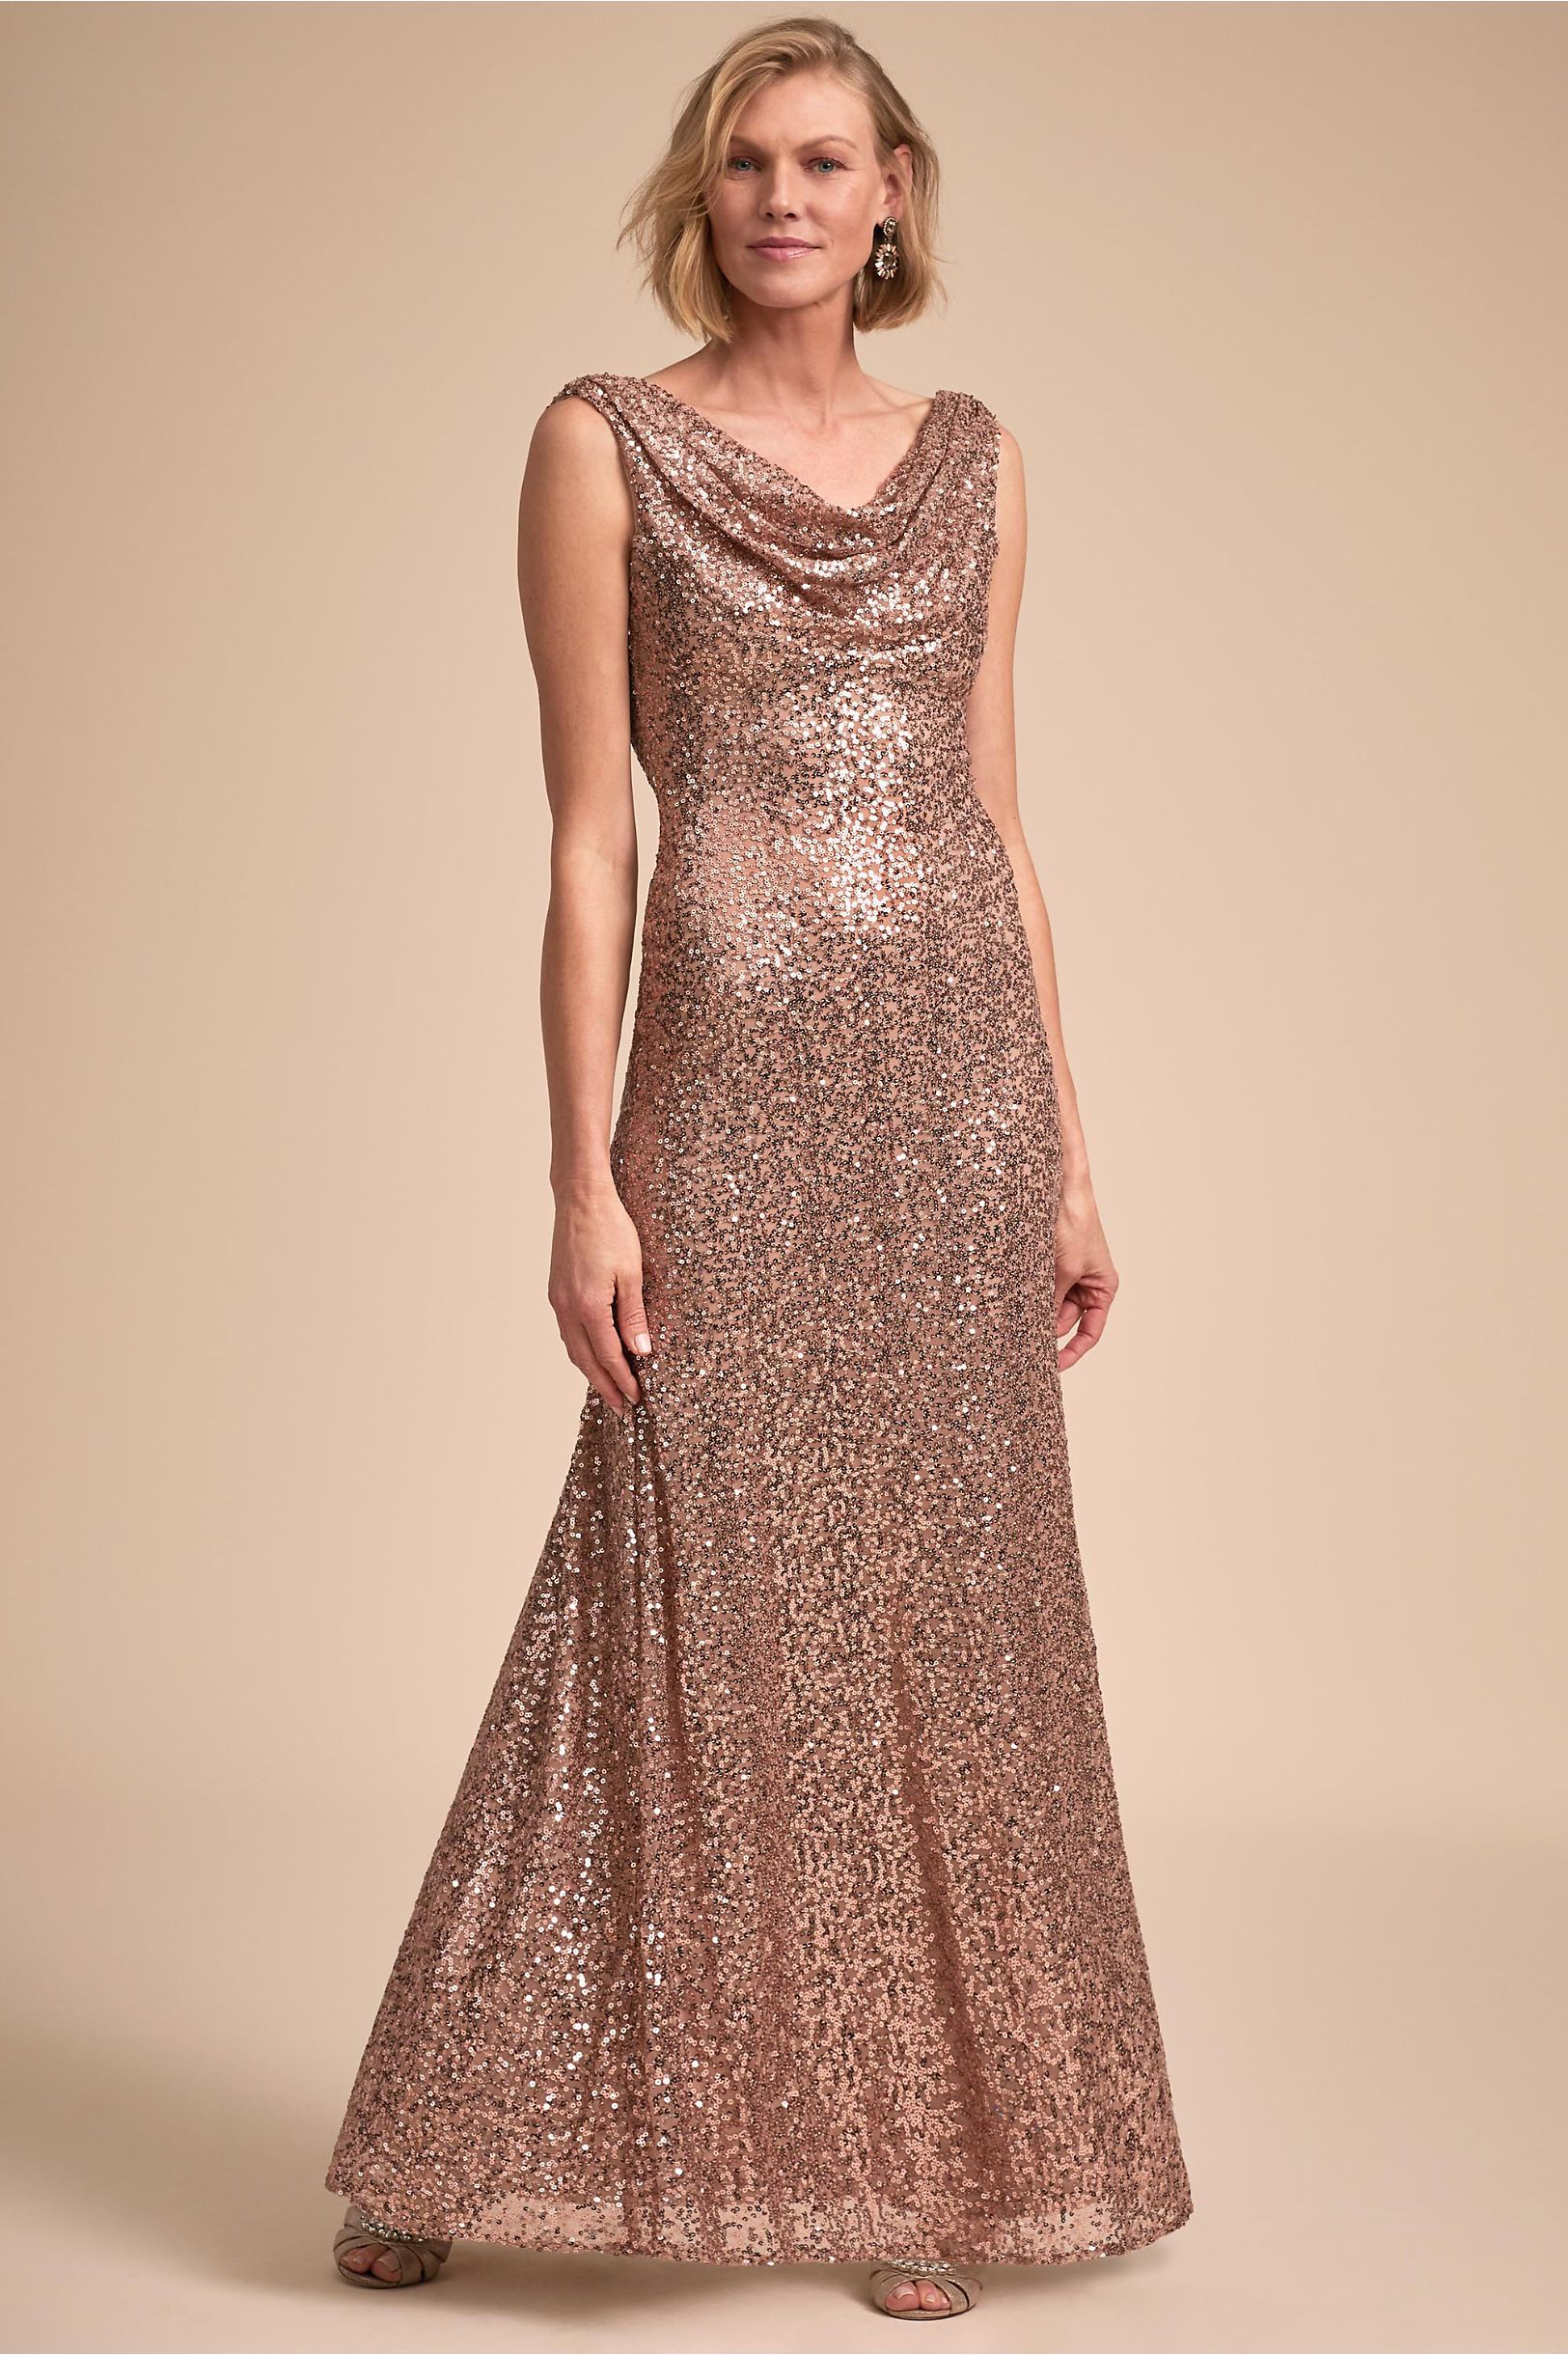 314c7008df7 Francia Dress Rose Gold in Occasion Dresses